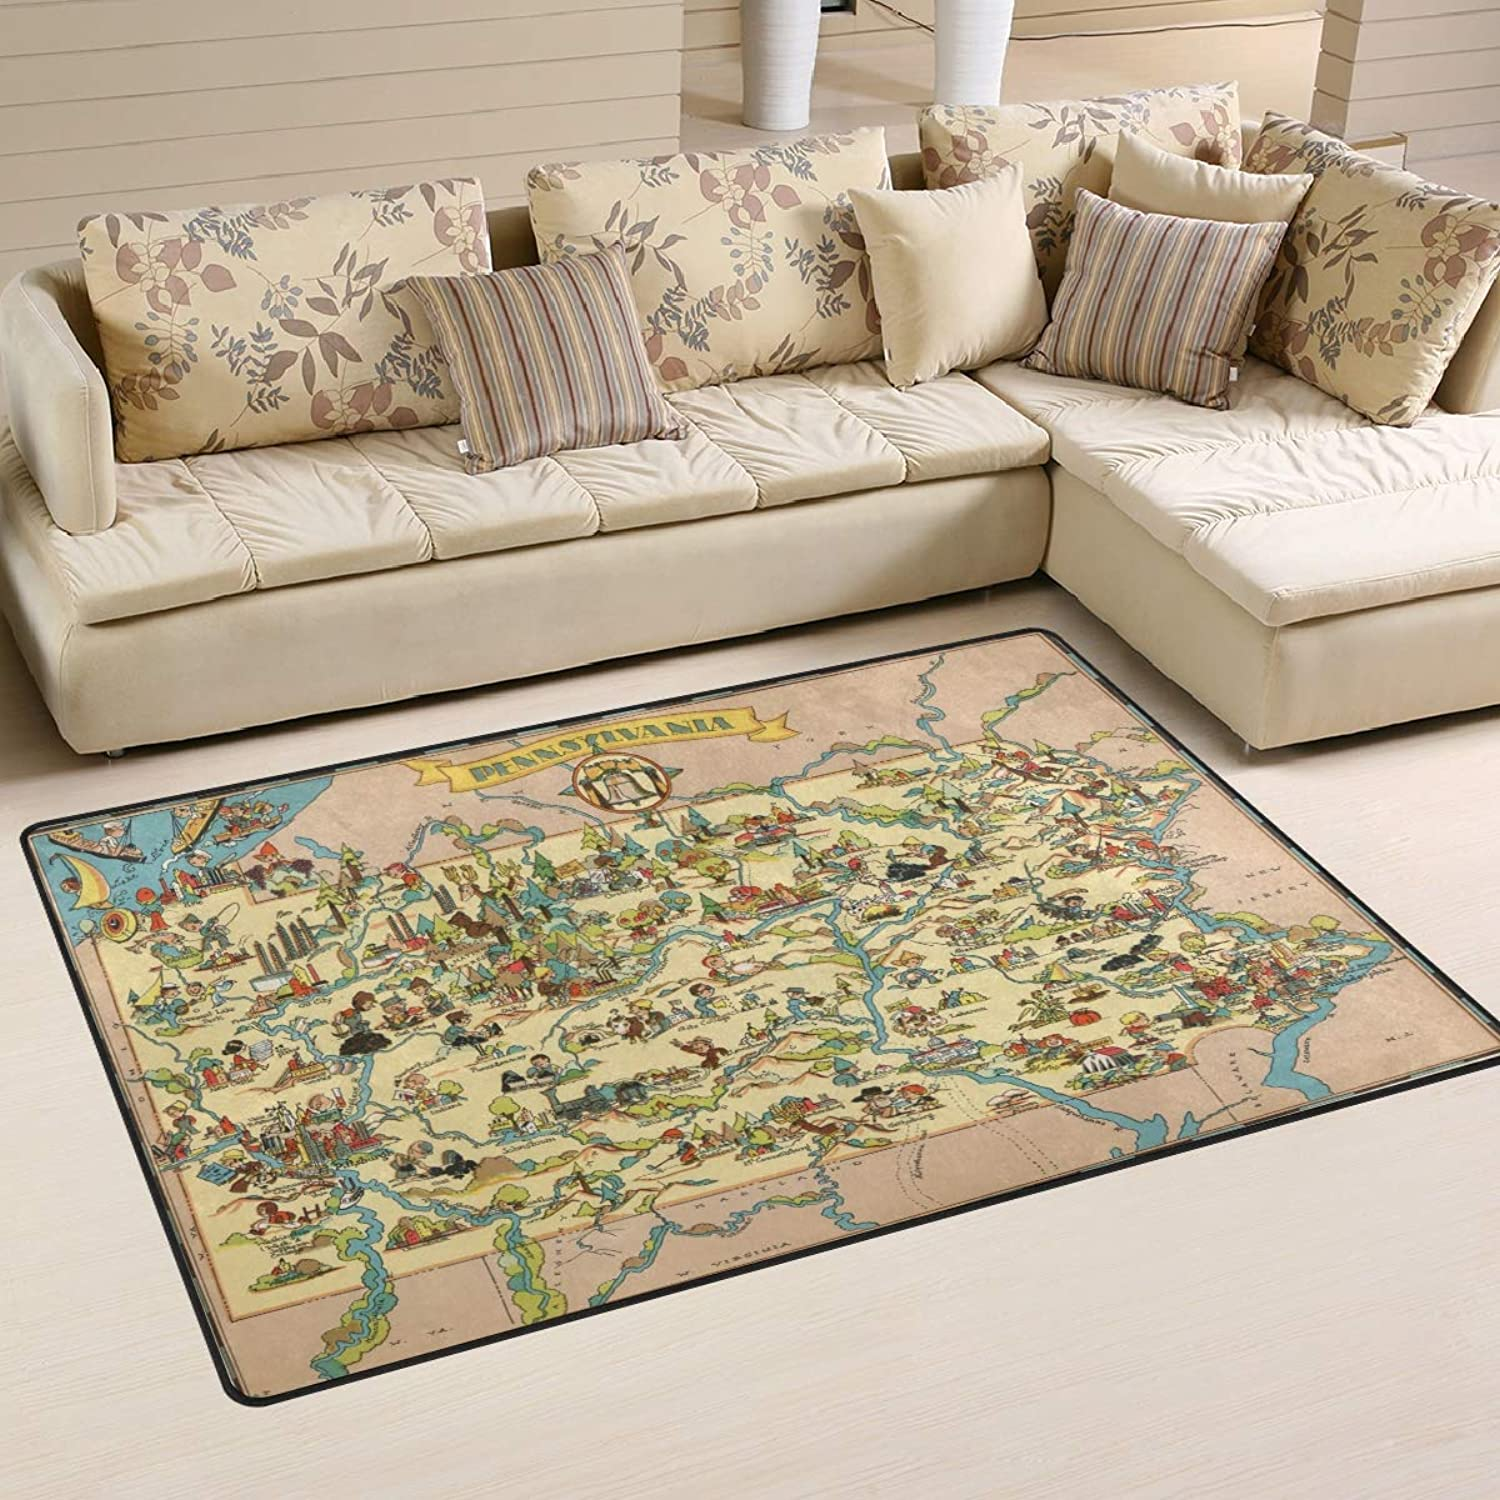 Area Rugs Doormats Vintage Cartoon Map 5'x3'3 (60x39 Inches) Non-Slip Floor Mat Soft Carpet for Living Dining Bedroom Home